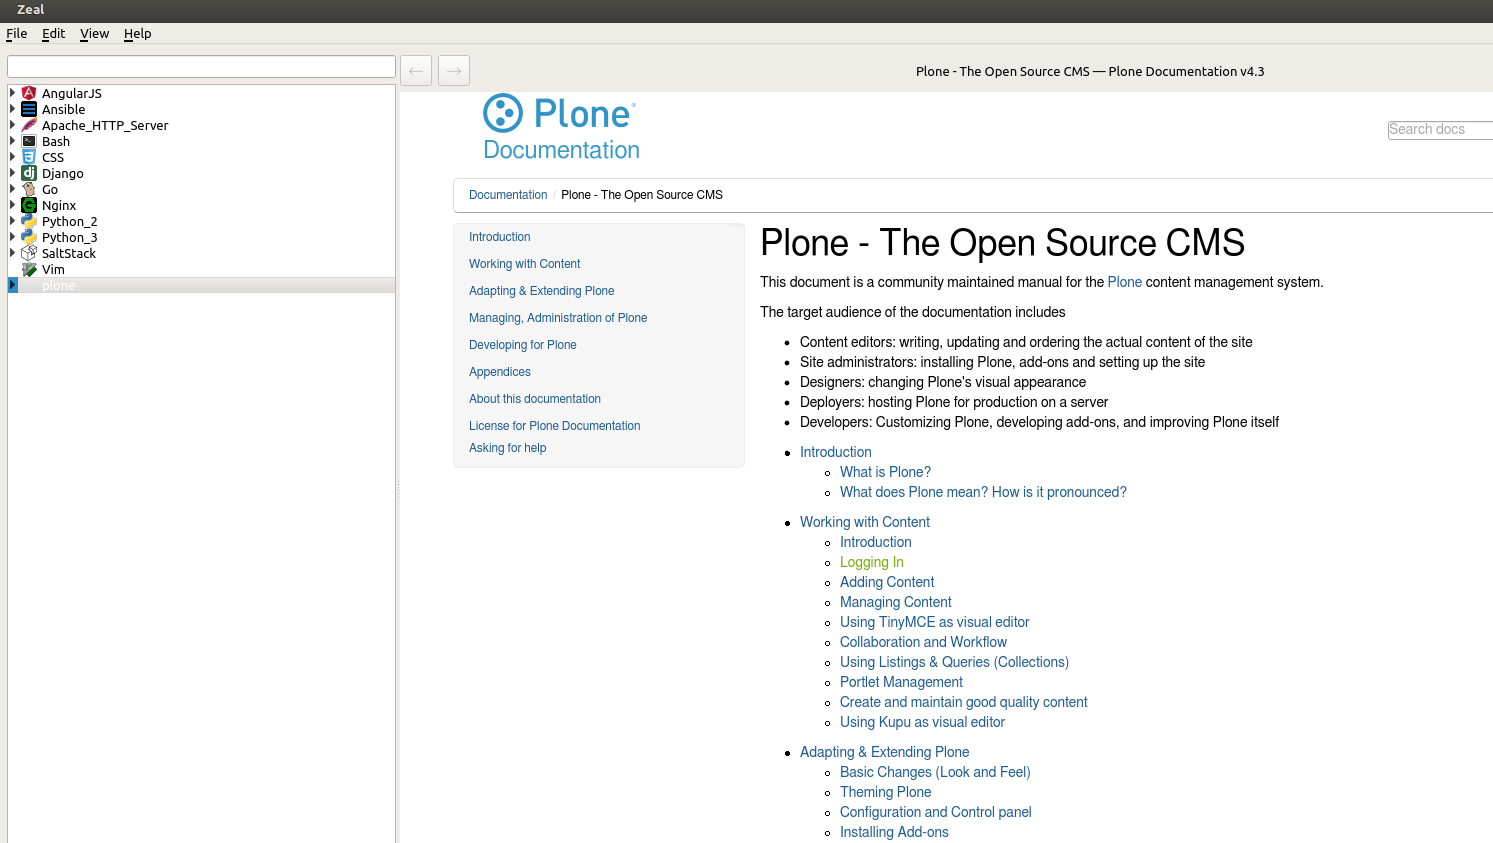 Make usage of docs more convenient - Documentation - Plone